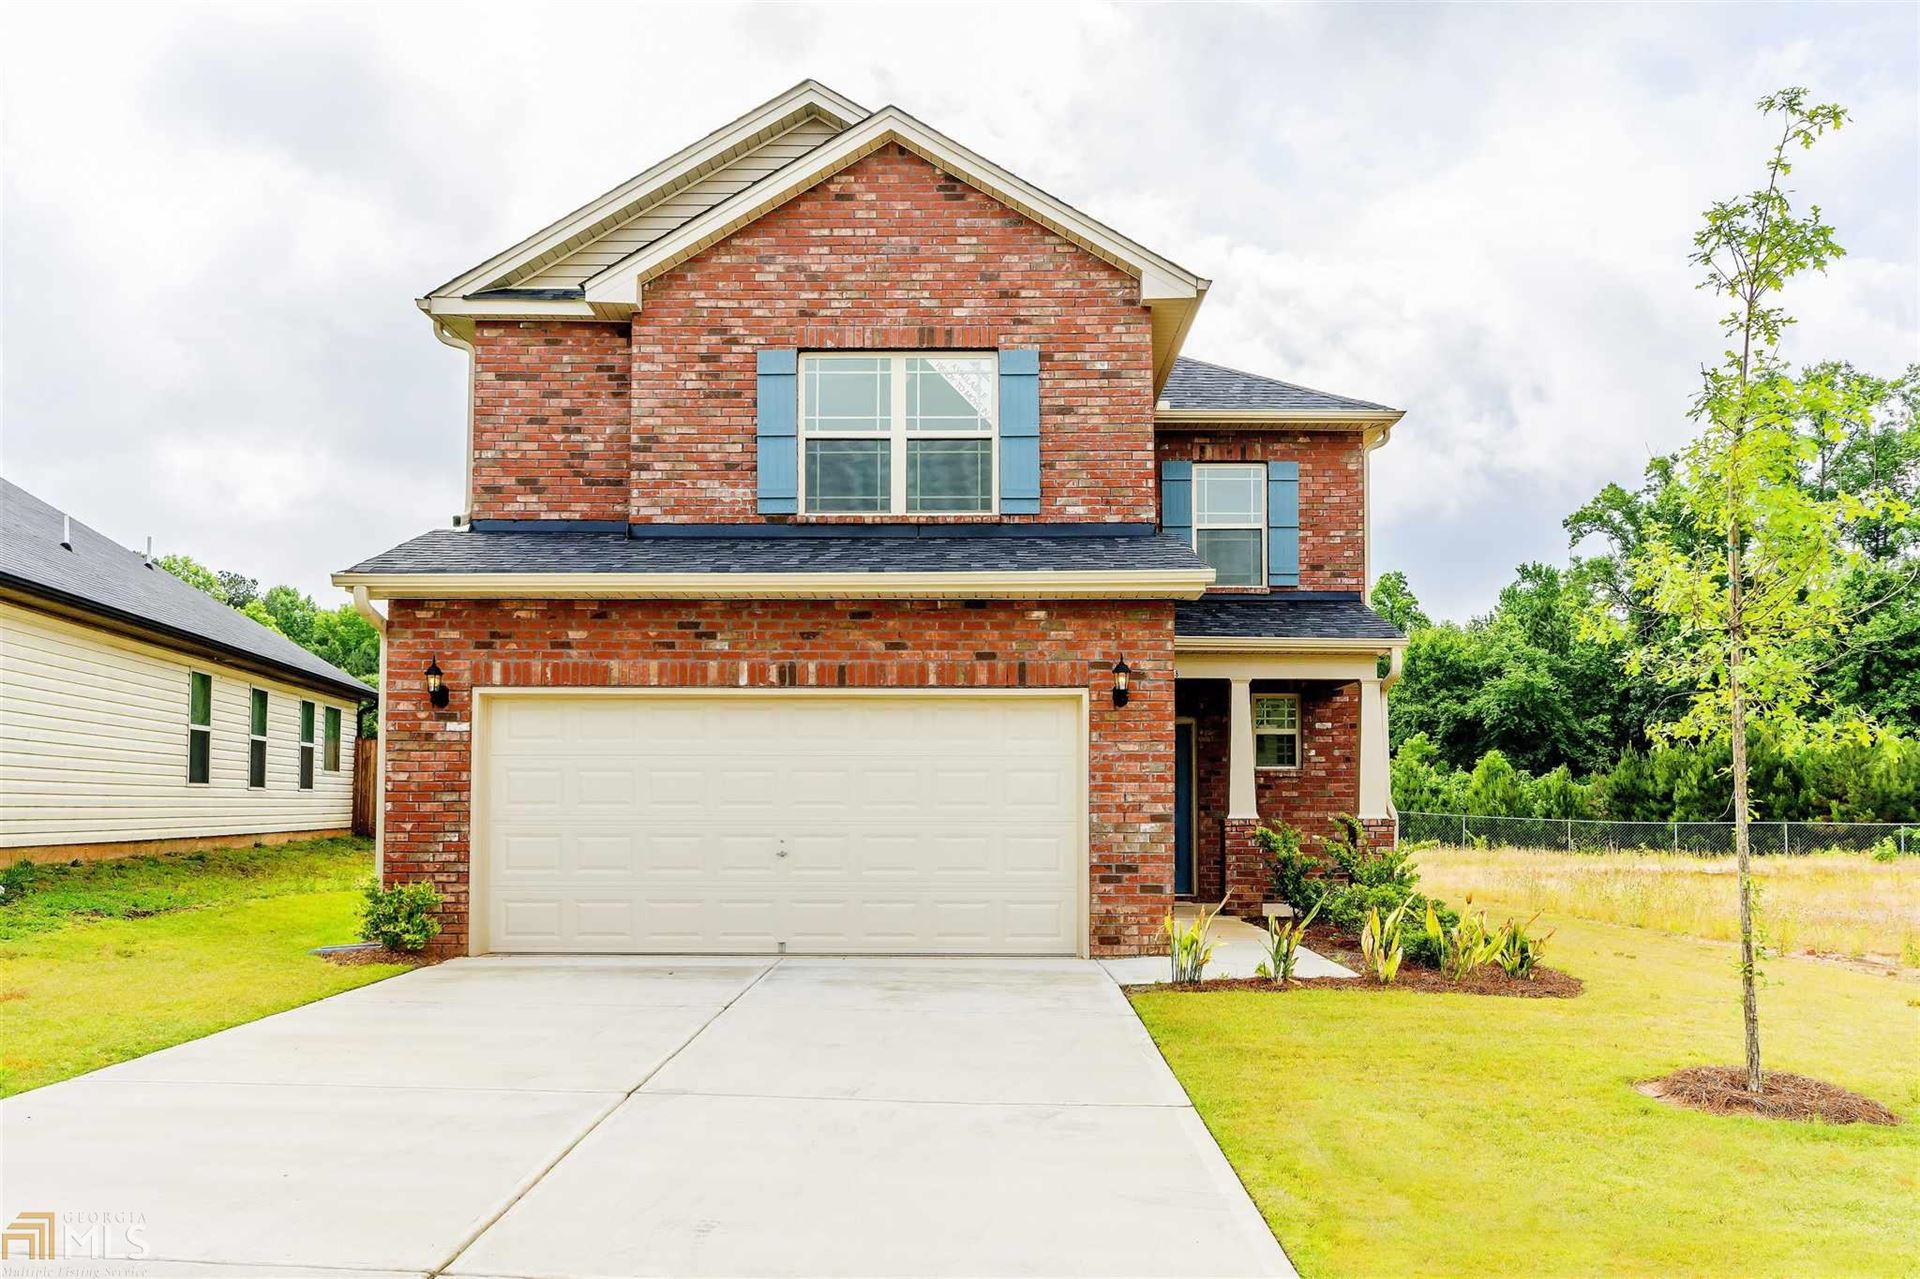 2617 Lovejoy Crossing Ln, Lovejoy, GA 30250 - #: 8713402